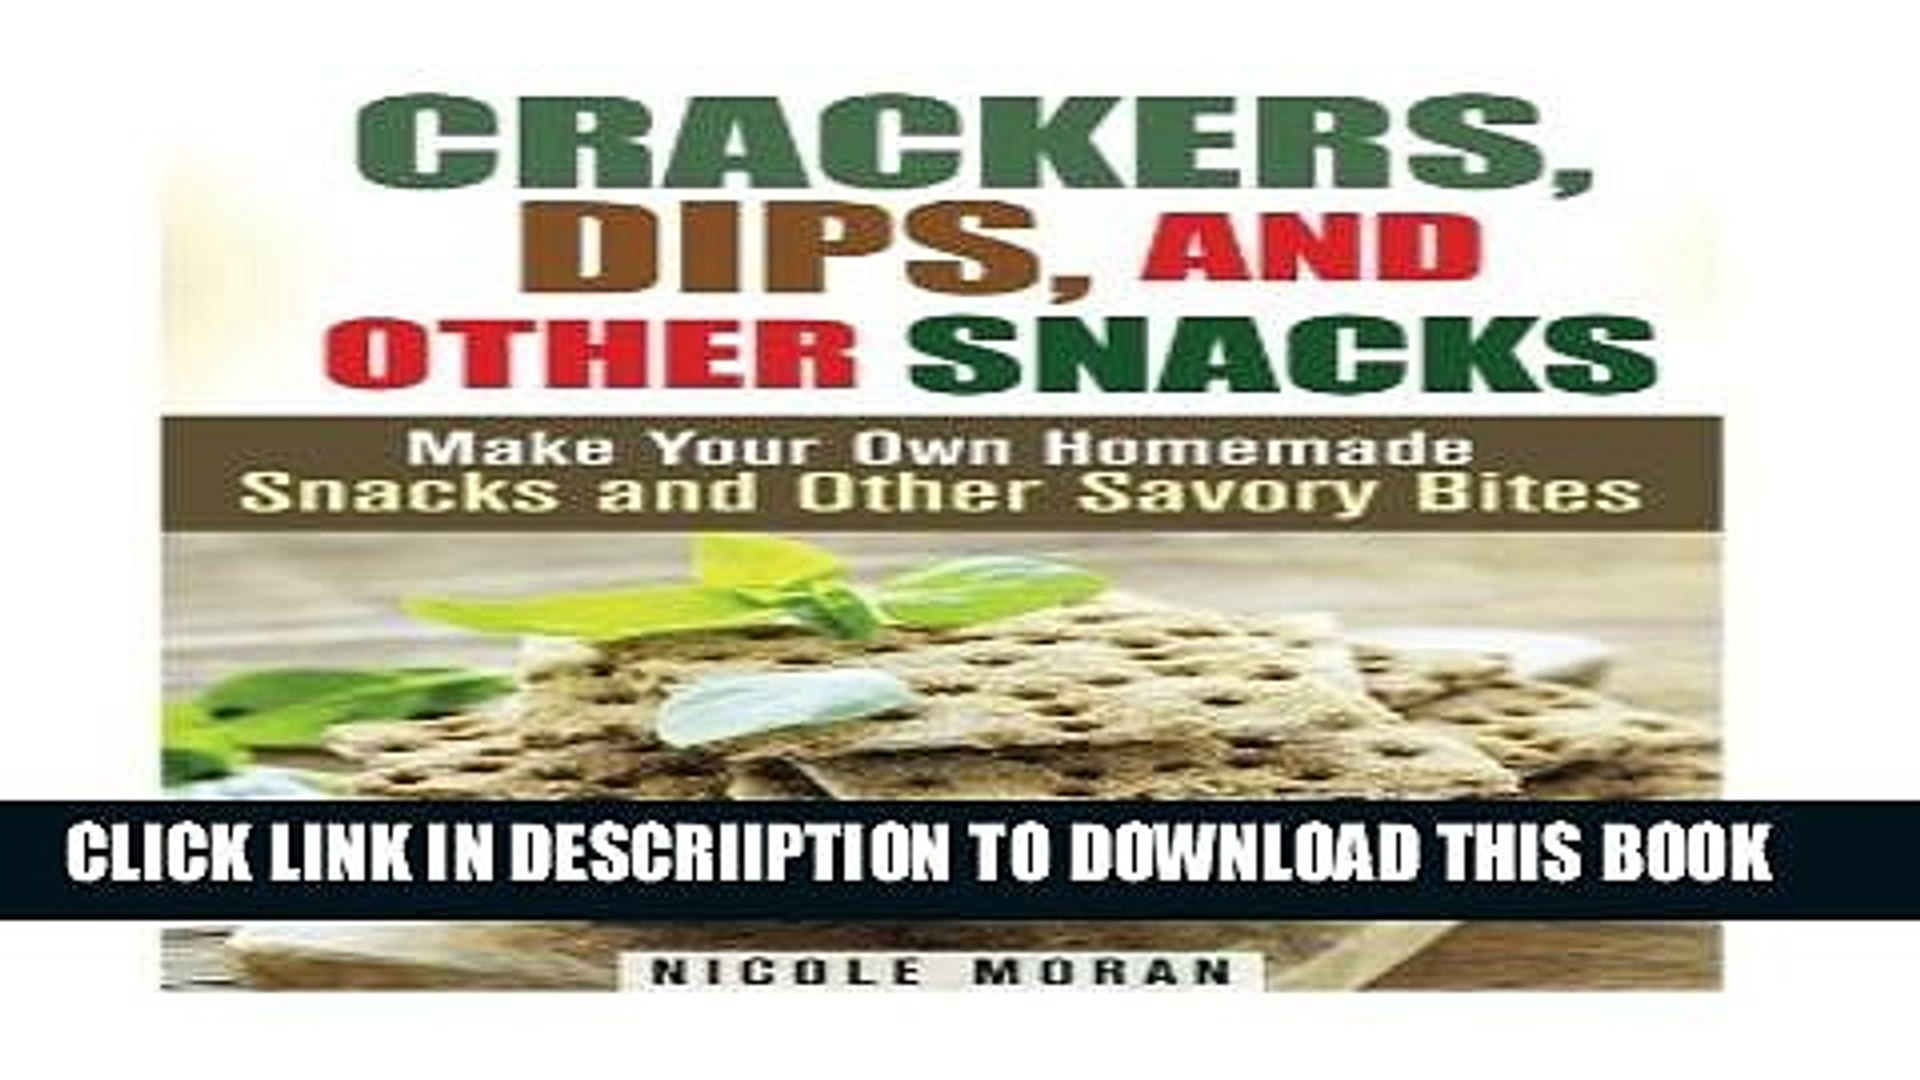 [PDF] Crackers, Dips, and Other Snacks: Make Your Own Homemade Snacks and Other Savory Bites